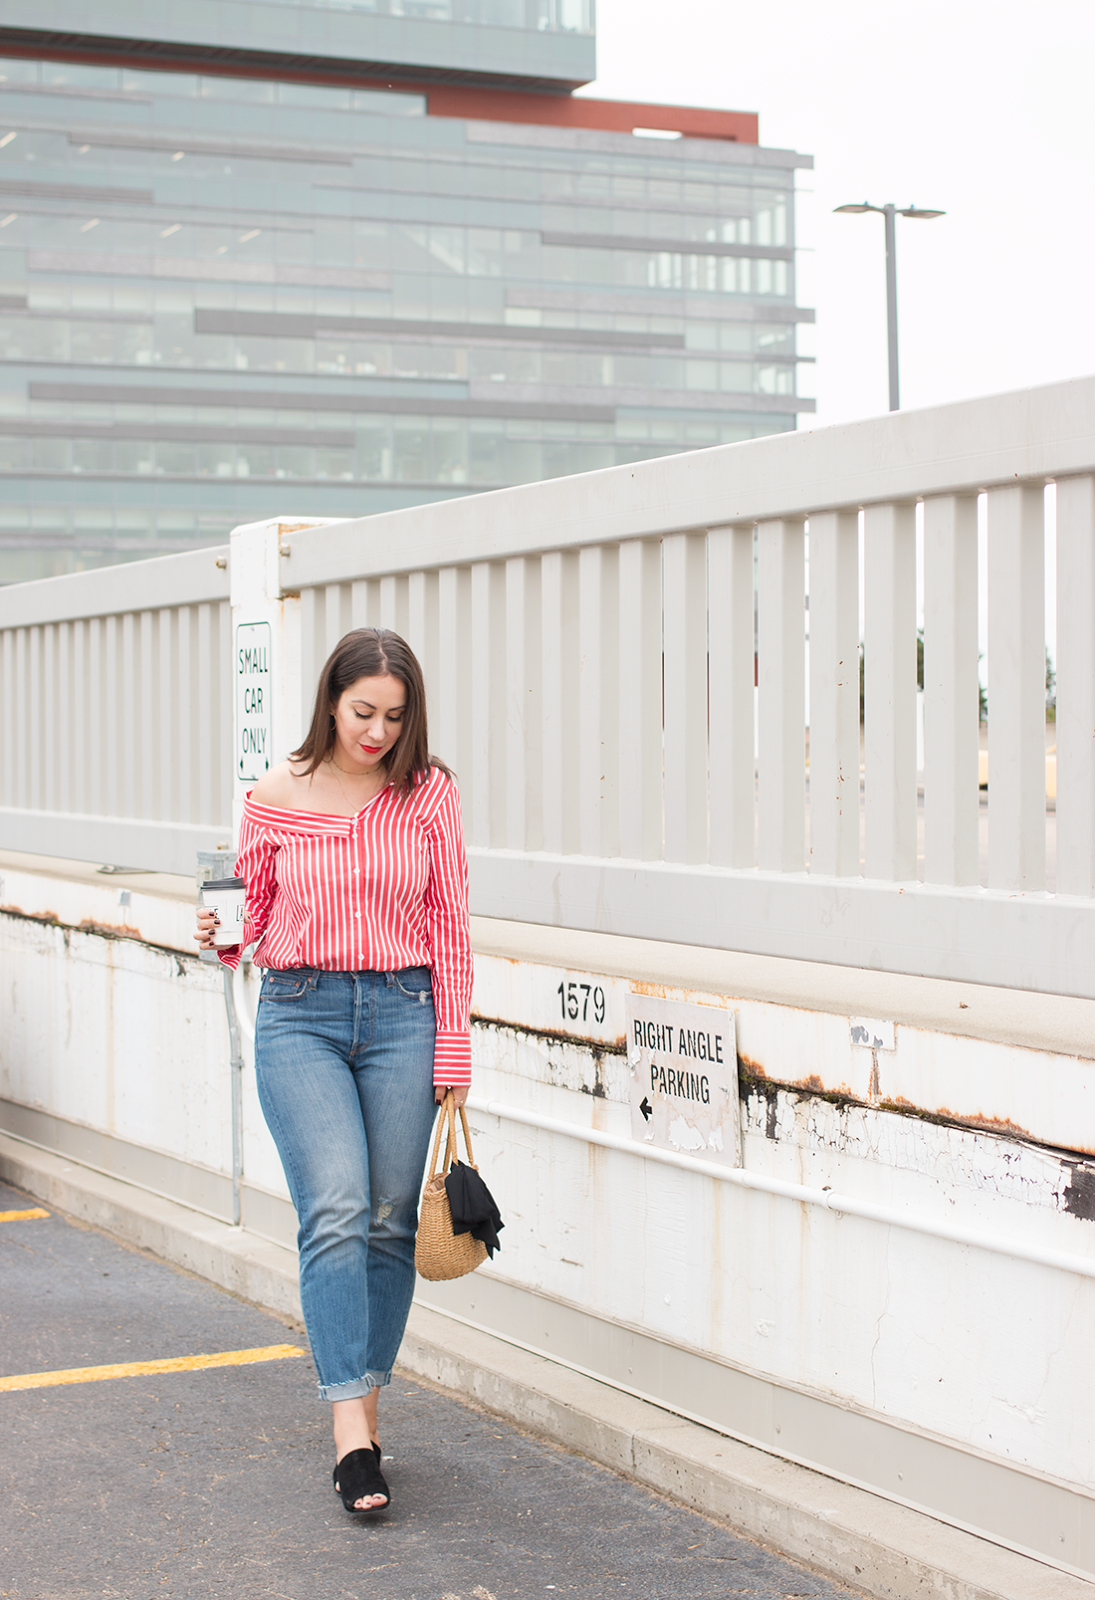 Giving Summer The Cold Shoulder (Or How to Dress Transitionally)